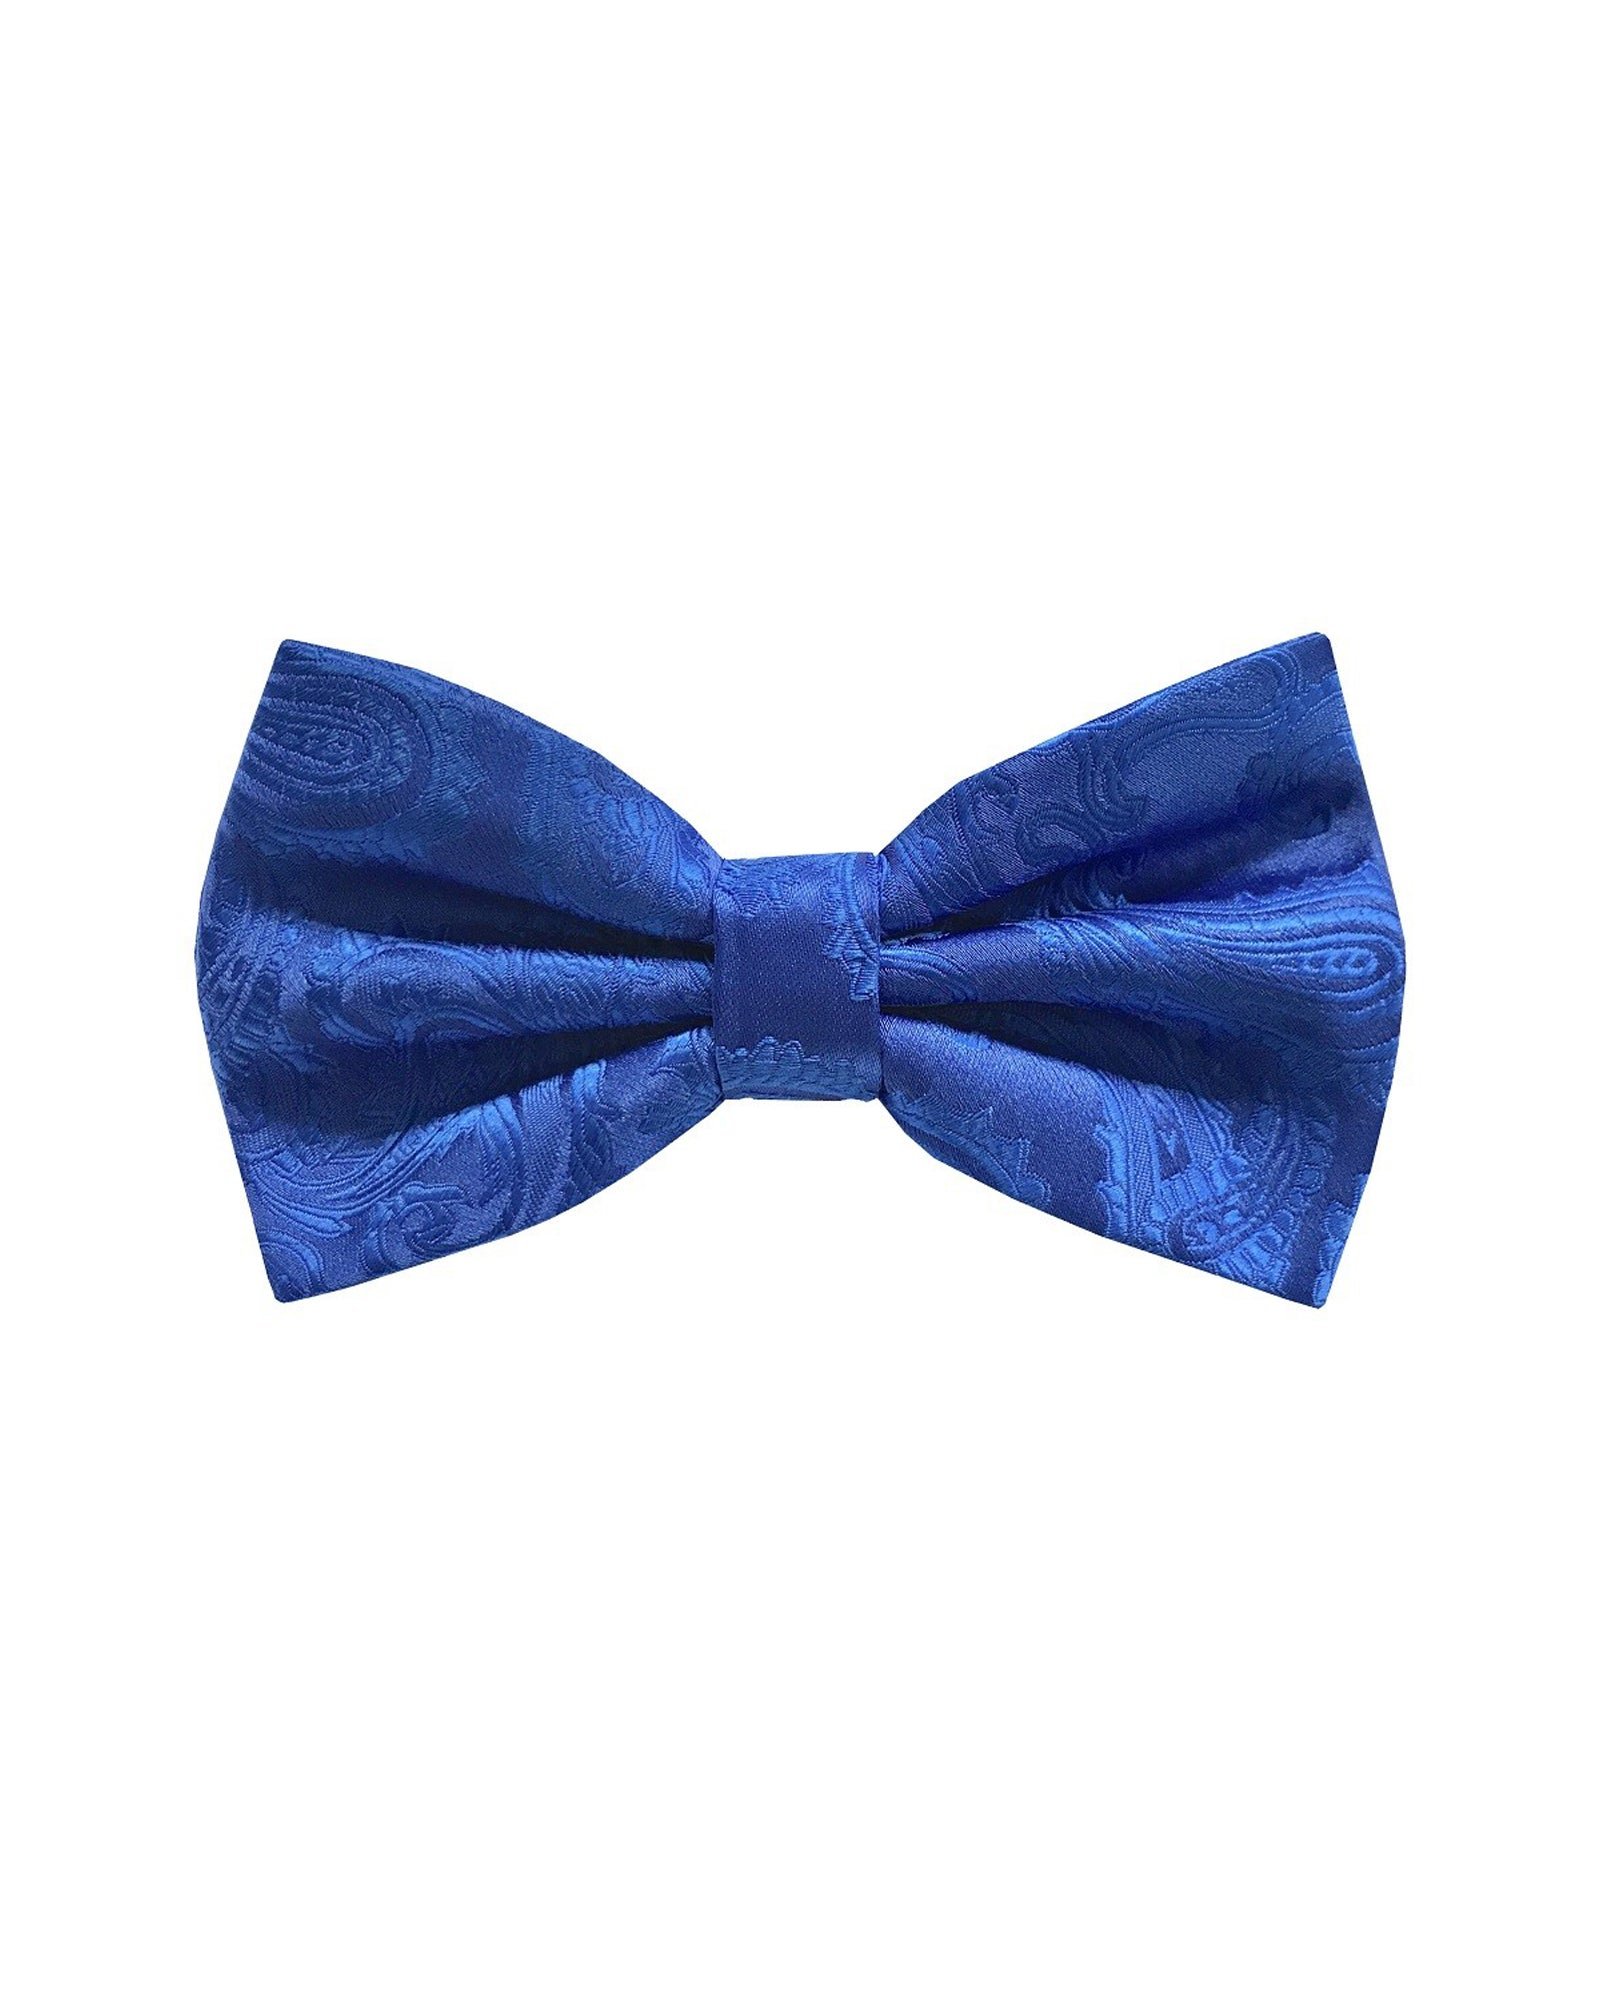 Bow Tie In Paisley Pattern Royal - Rainwater's